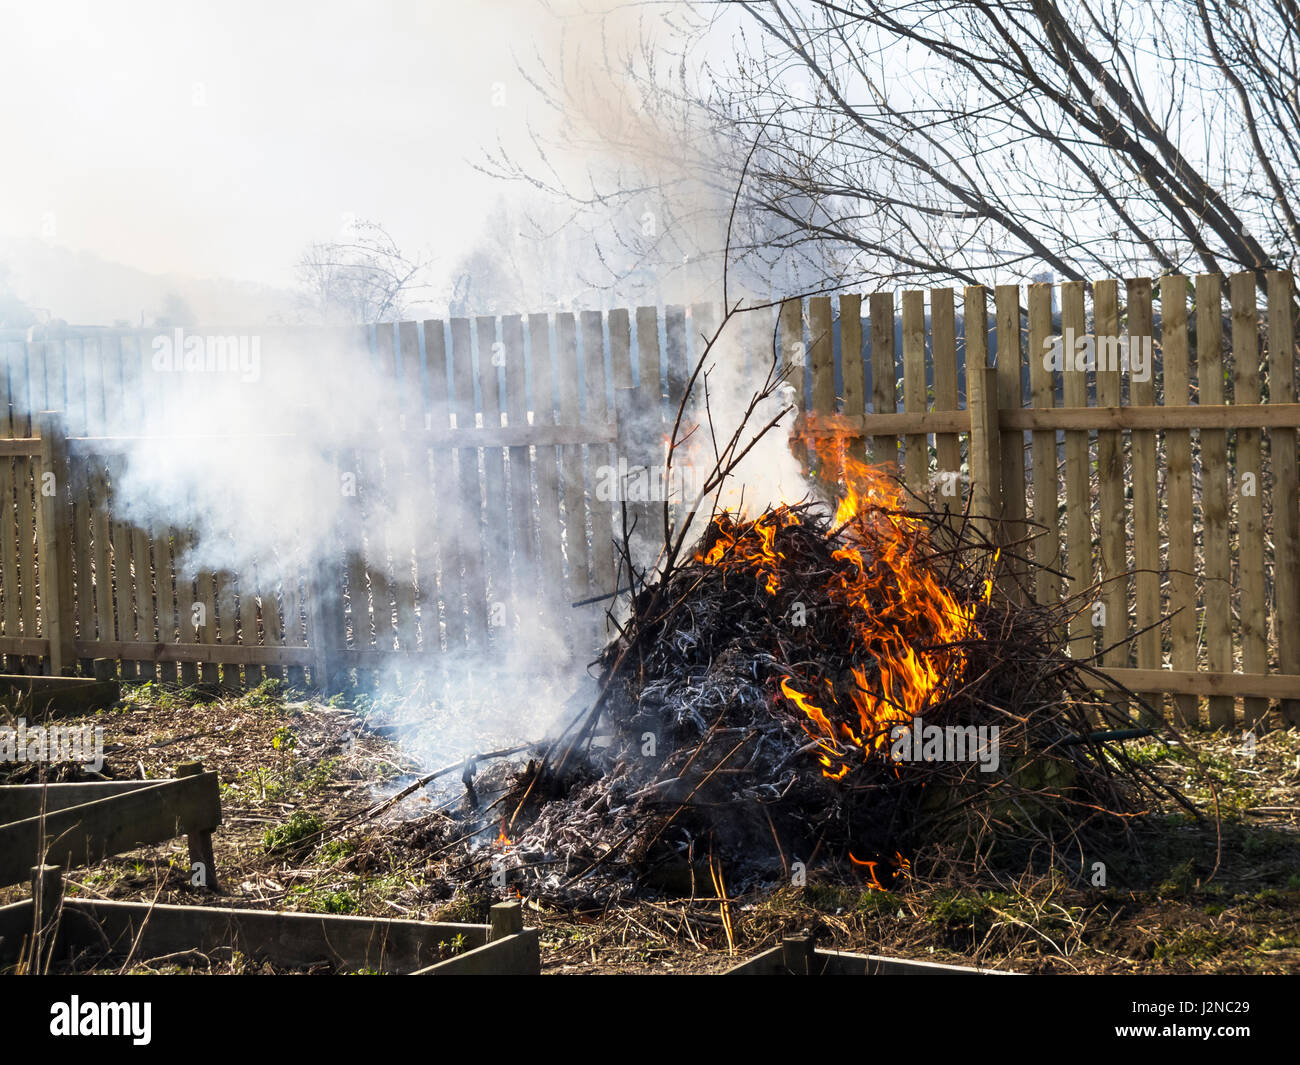 Allotment bonfire after clearing the overgrown land - Stock Image